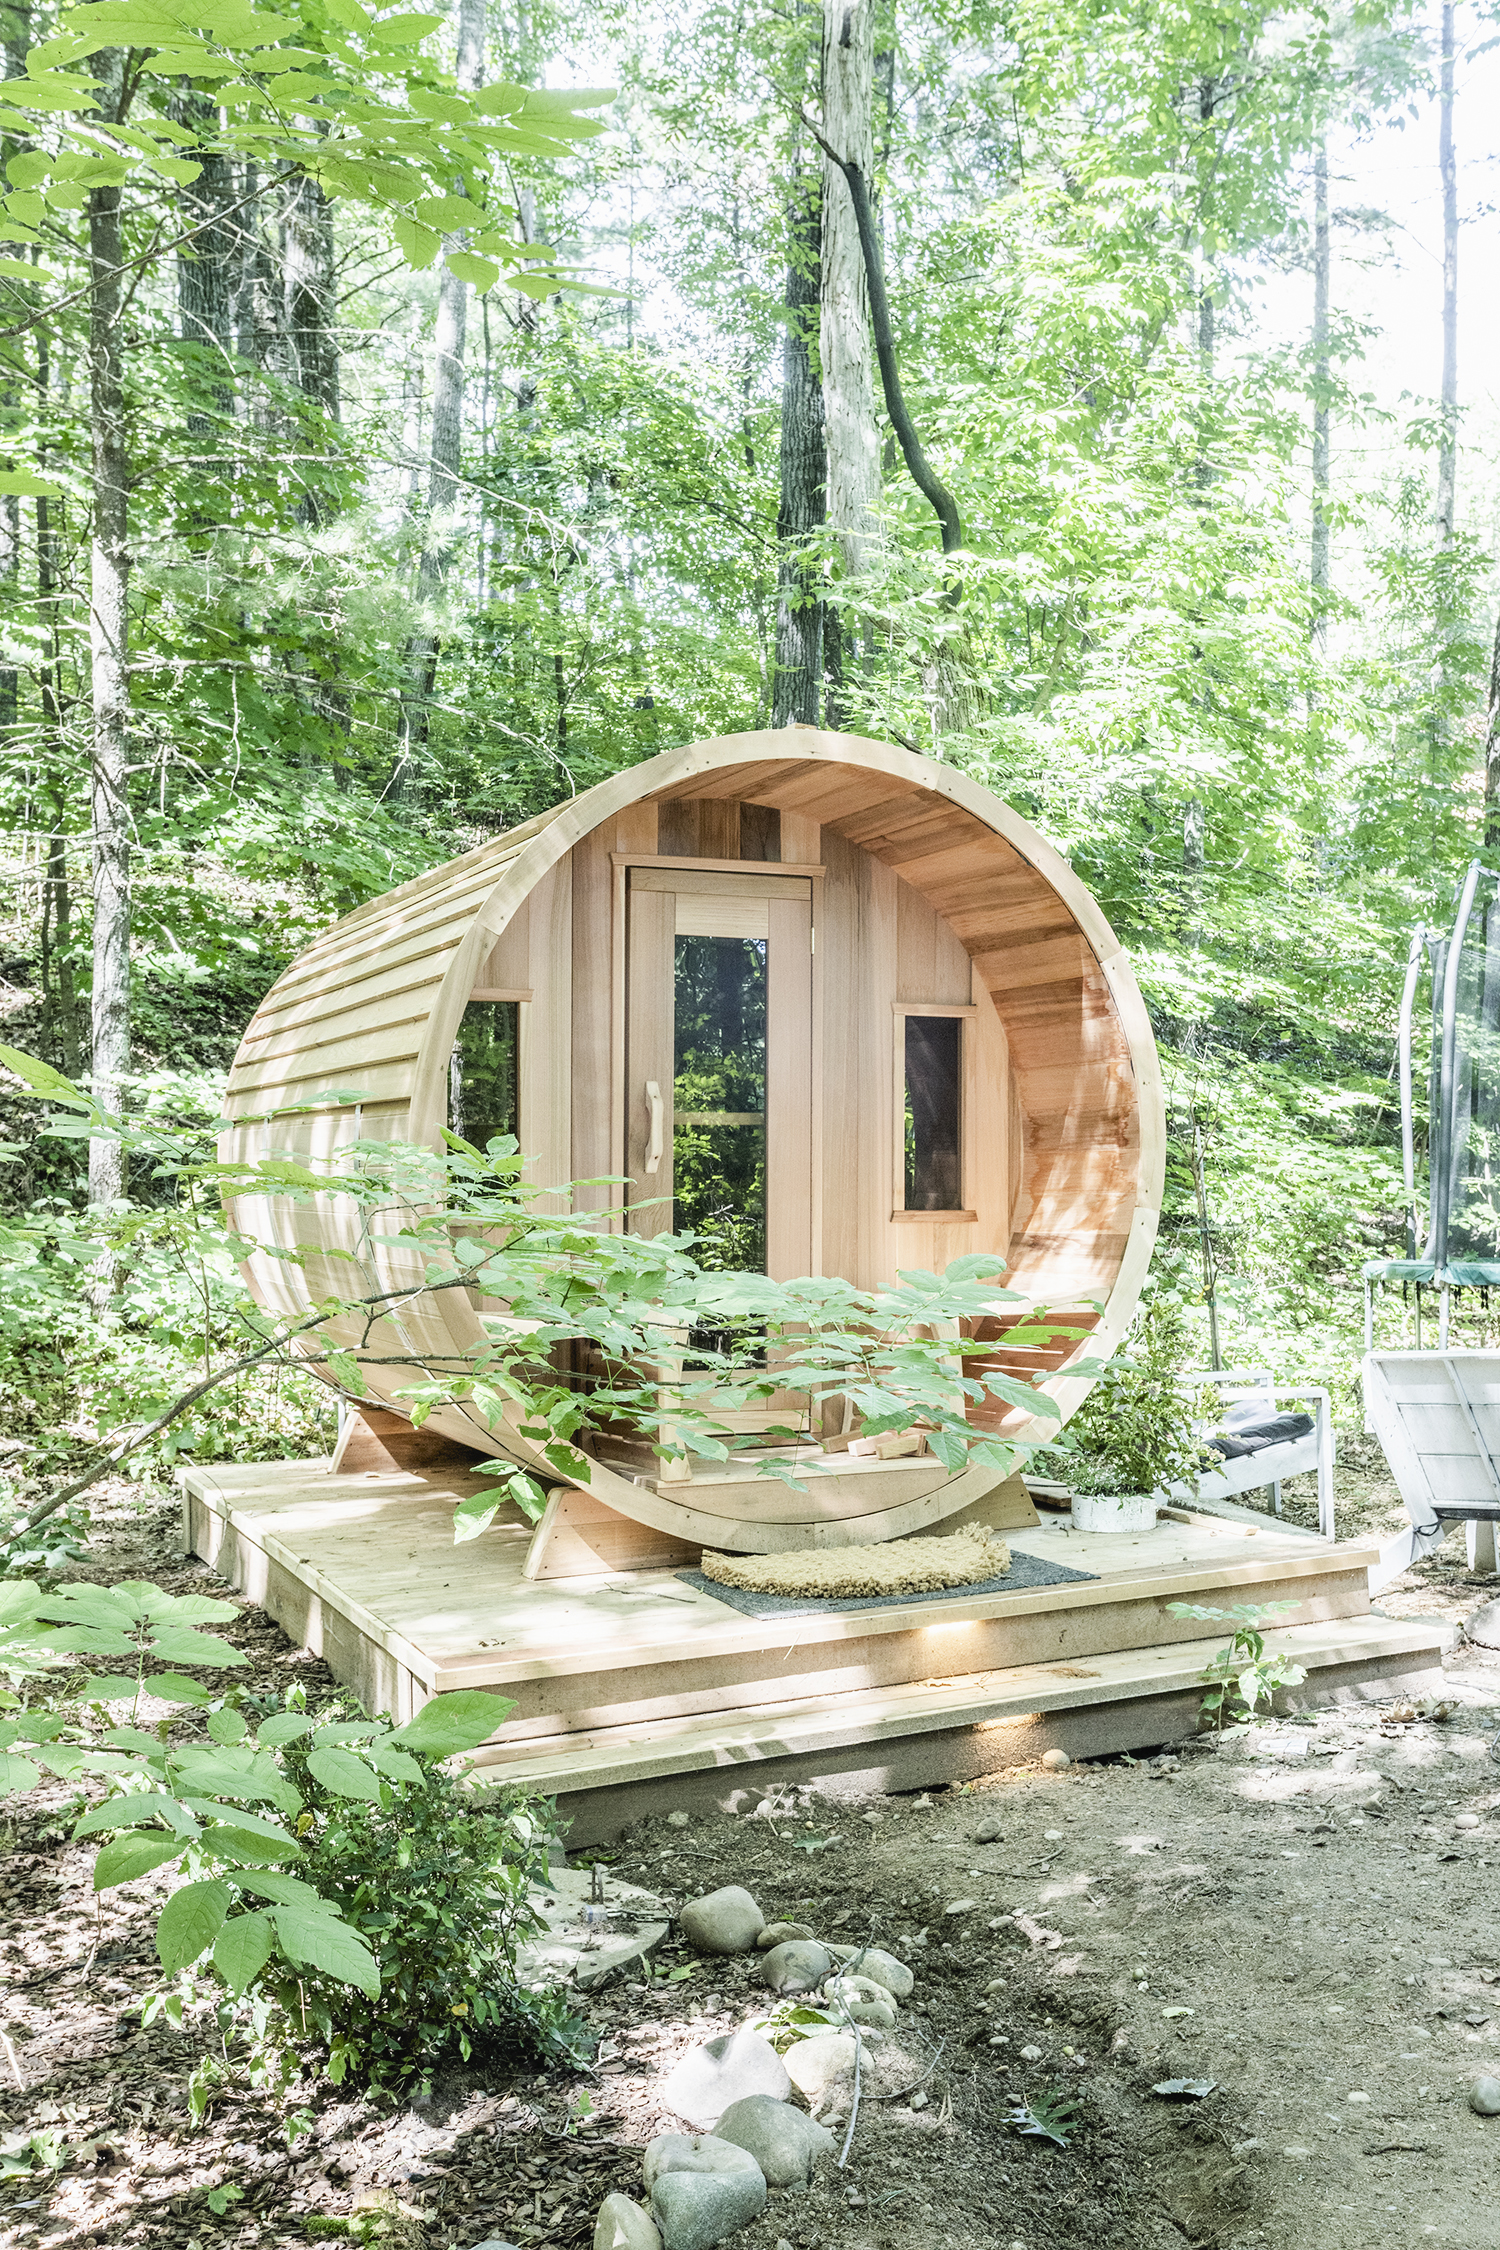 Barrel Sauna in the Woods